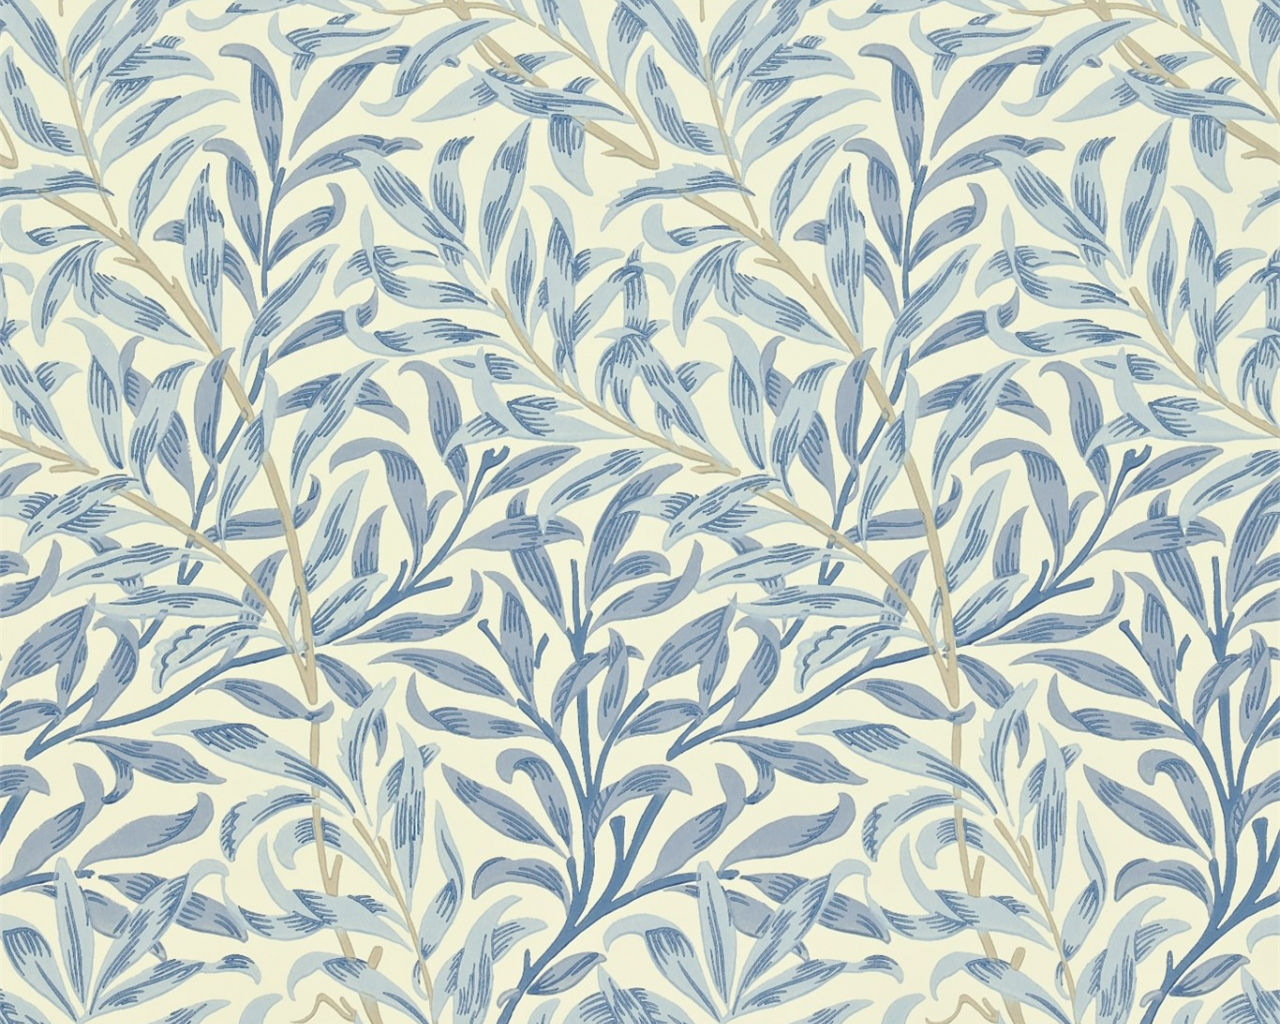 Free Download Co Arts And Crafts Fabrics And Wallpaper Designs By William Morris 1366x1366 For Your Desktop Mobile Tablet Explore 50 William Morris Wallpaper Samples William Morris Reproduction Wallpaper